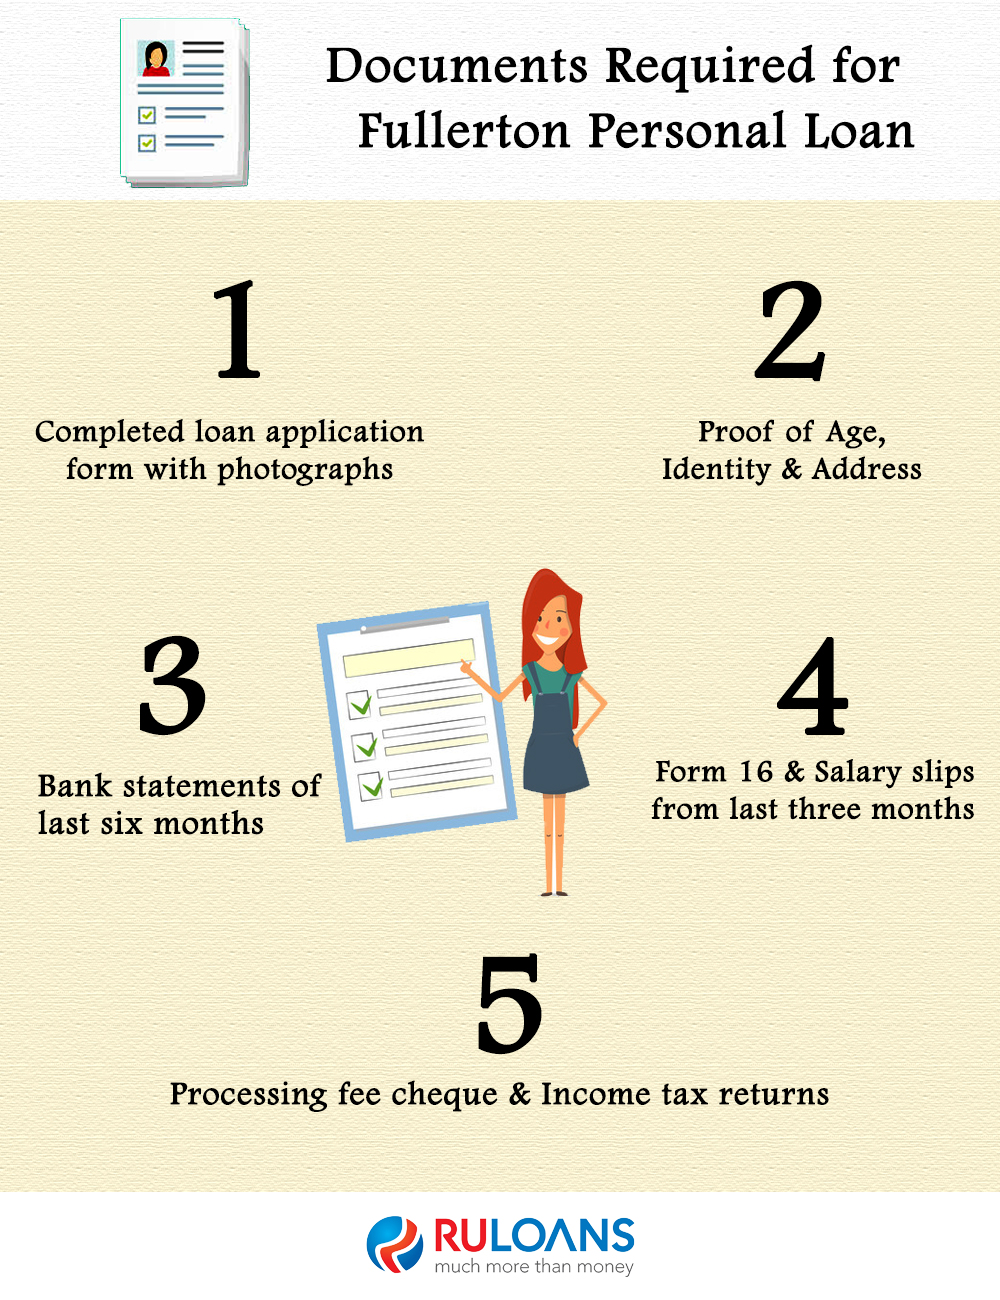 Documents Required for Fullerton Personal Loan